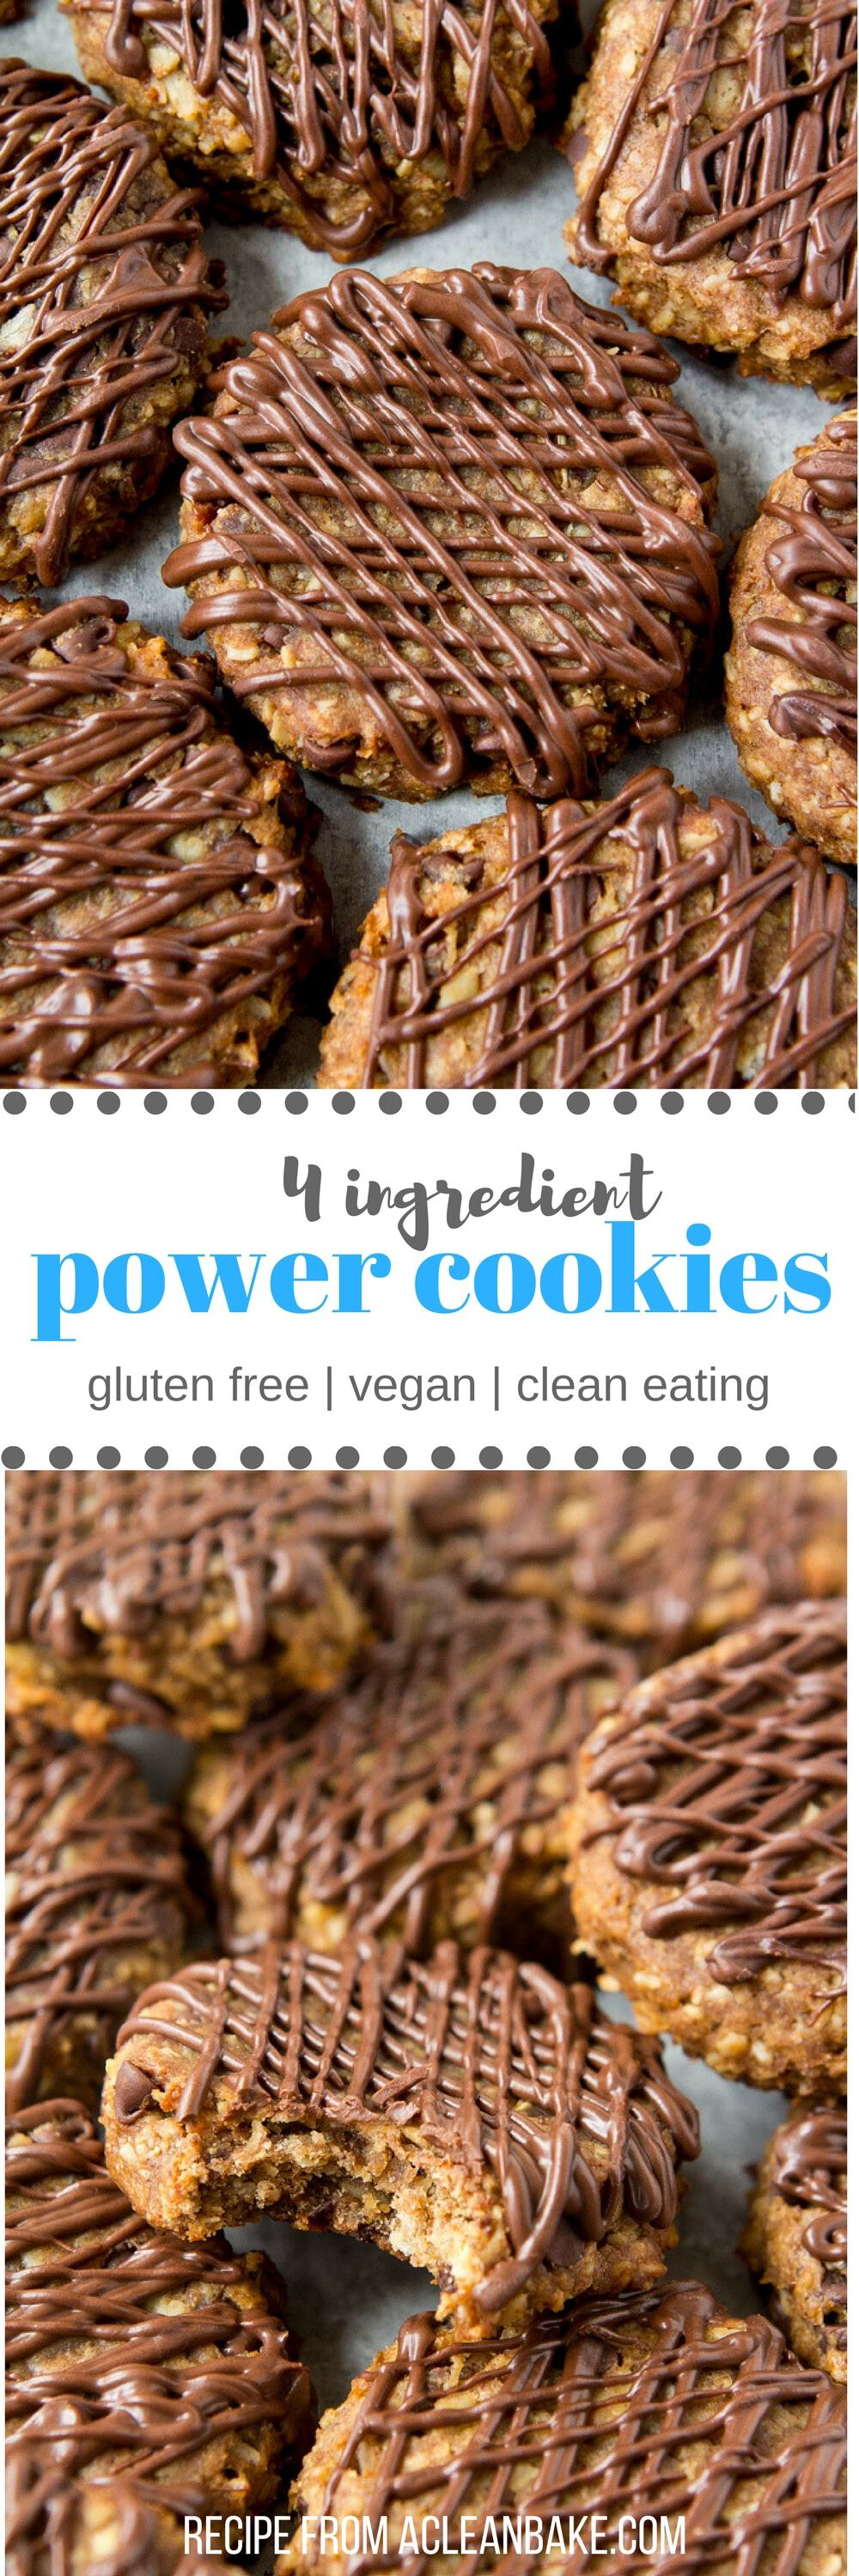 A healthy cookie? Yes, it's a thing! These gluten free cookies are packed with oats (oatmeal), bananas, and peanut butter. They're naturally sweetened, and finished with a satisfying drizzle of chocolate! Have them as a dessert, or a snack before your run. Fun Fact: They also make great lactation cookies for nursing moms! #glutenfree #wholegrain #healthy #highfiber #lactationcookies #oats #oatmeal #peanutbutter #banana #naturallysweetened #cookie #dessert #snack